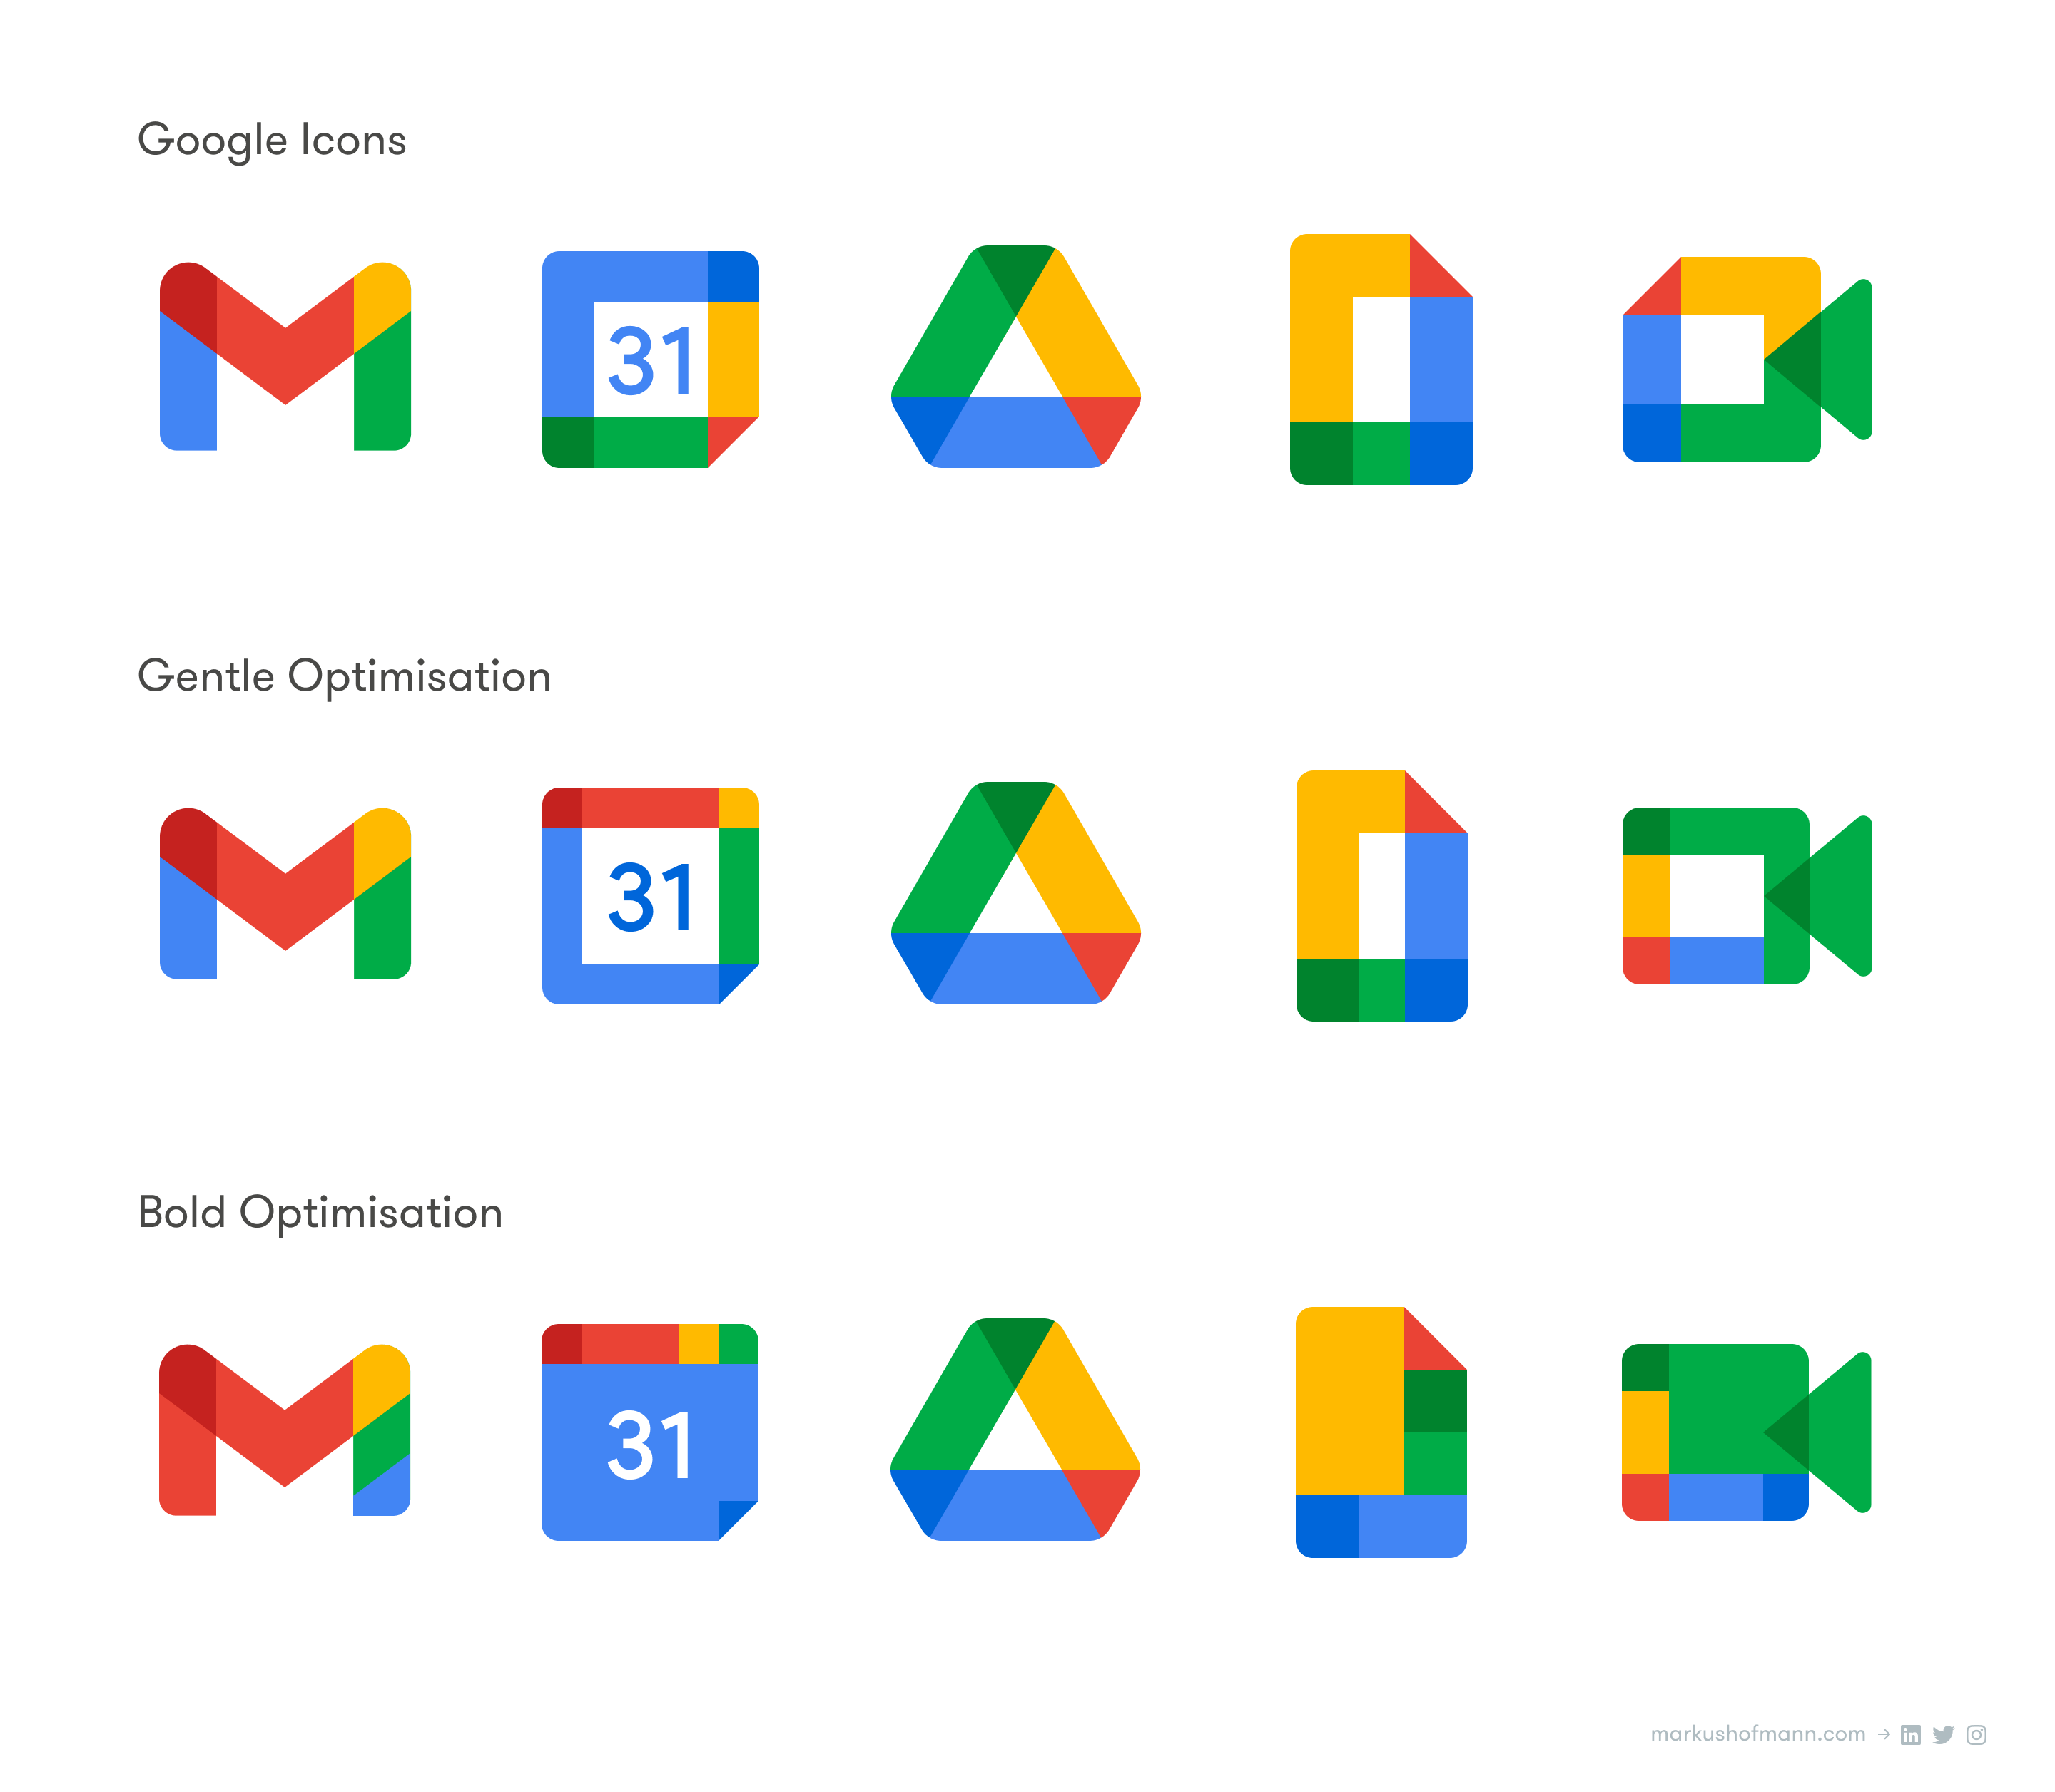 Comparison of Google's new Workplace icons and my gently optimised as well as bold, more distinct versions